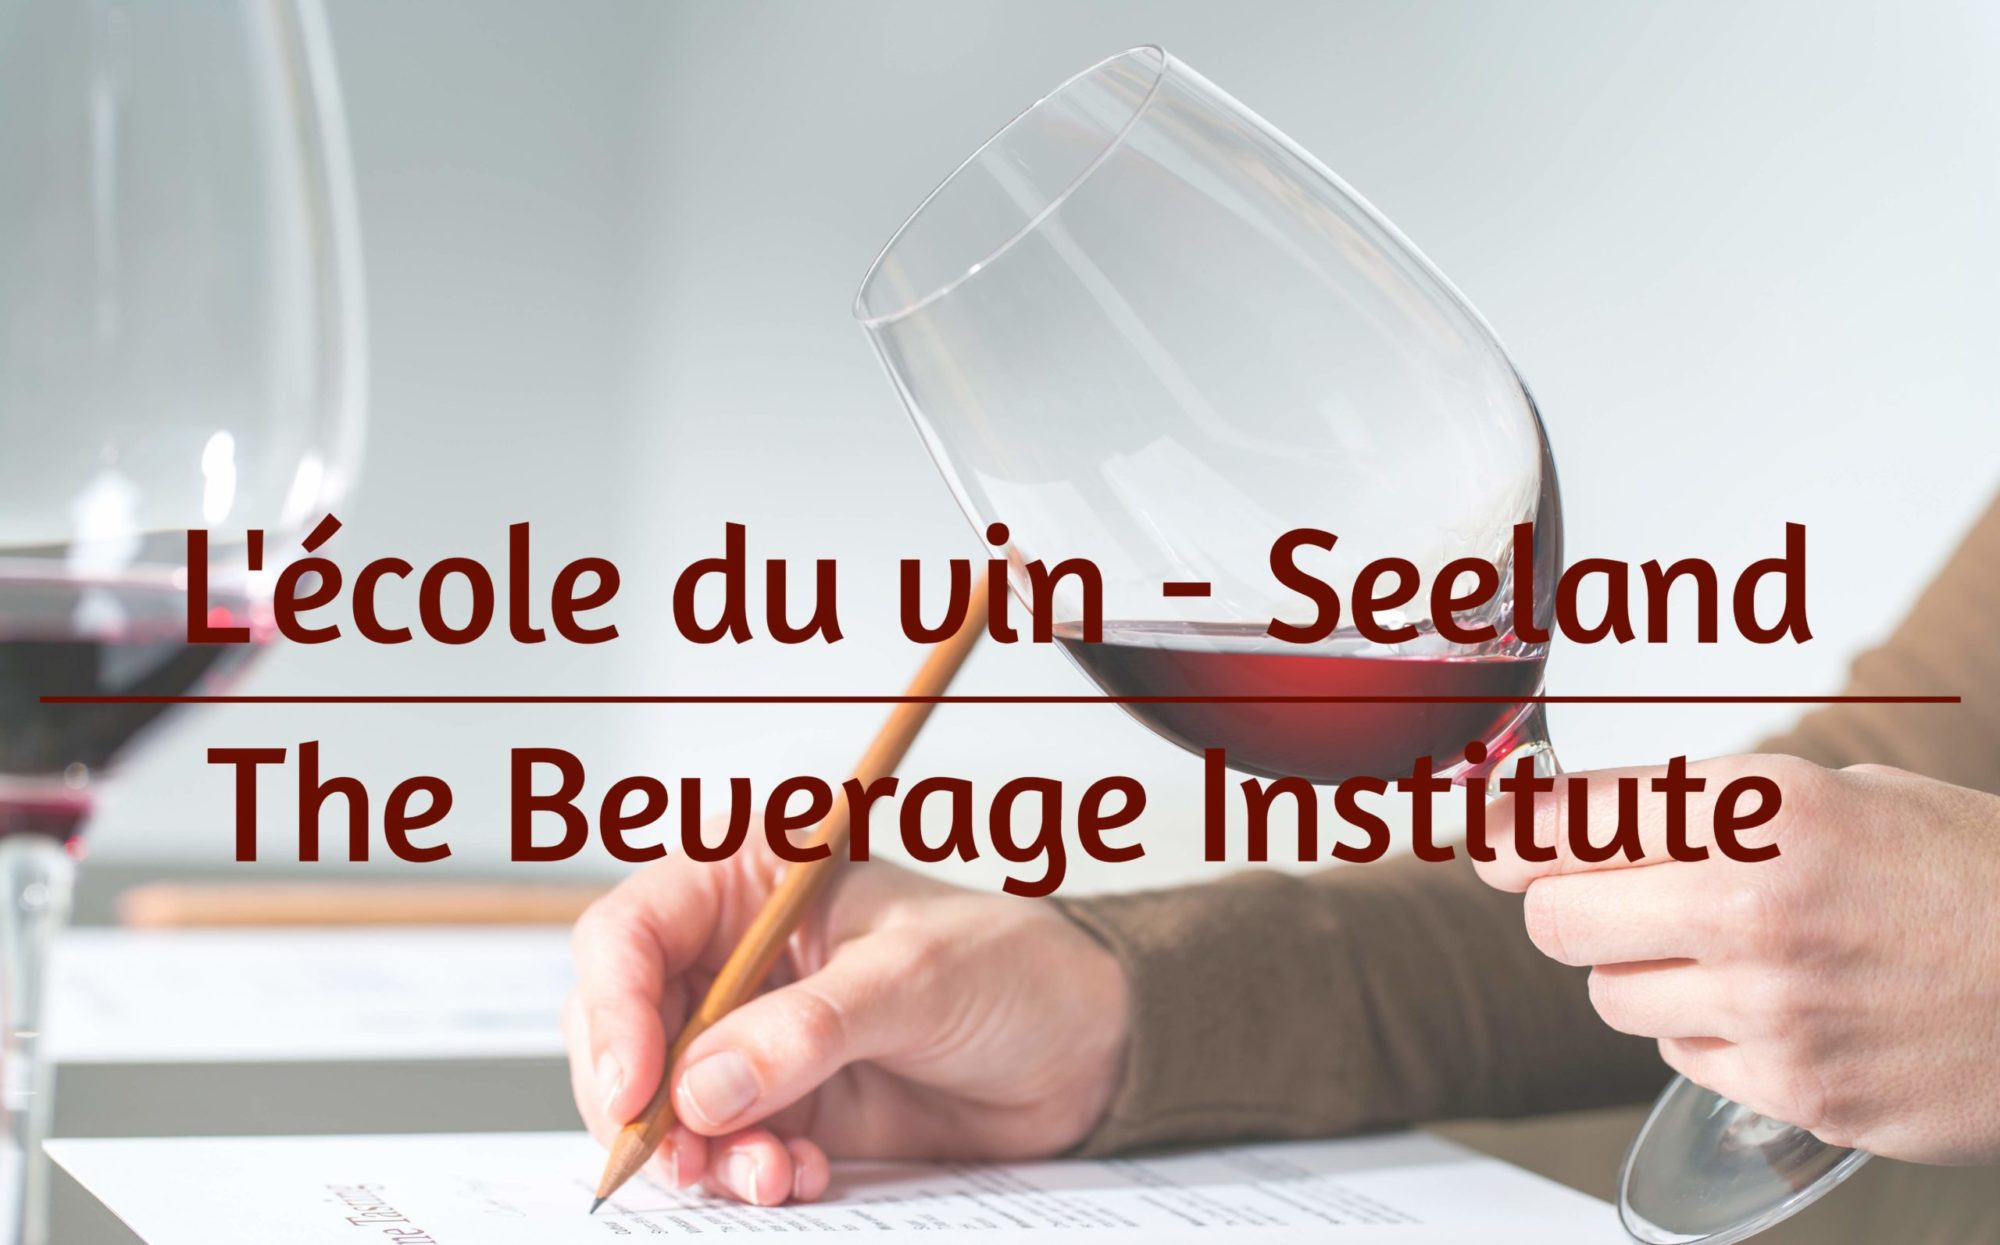 The Beverage Institute